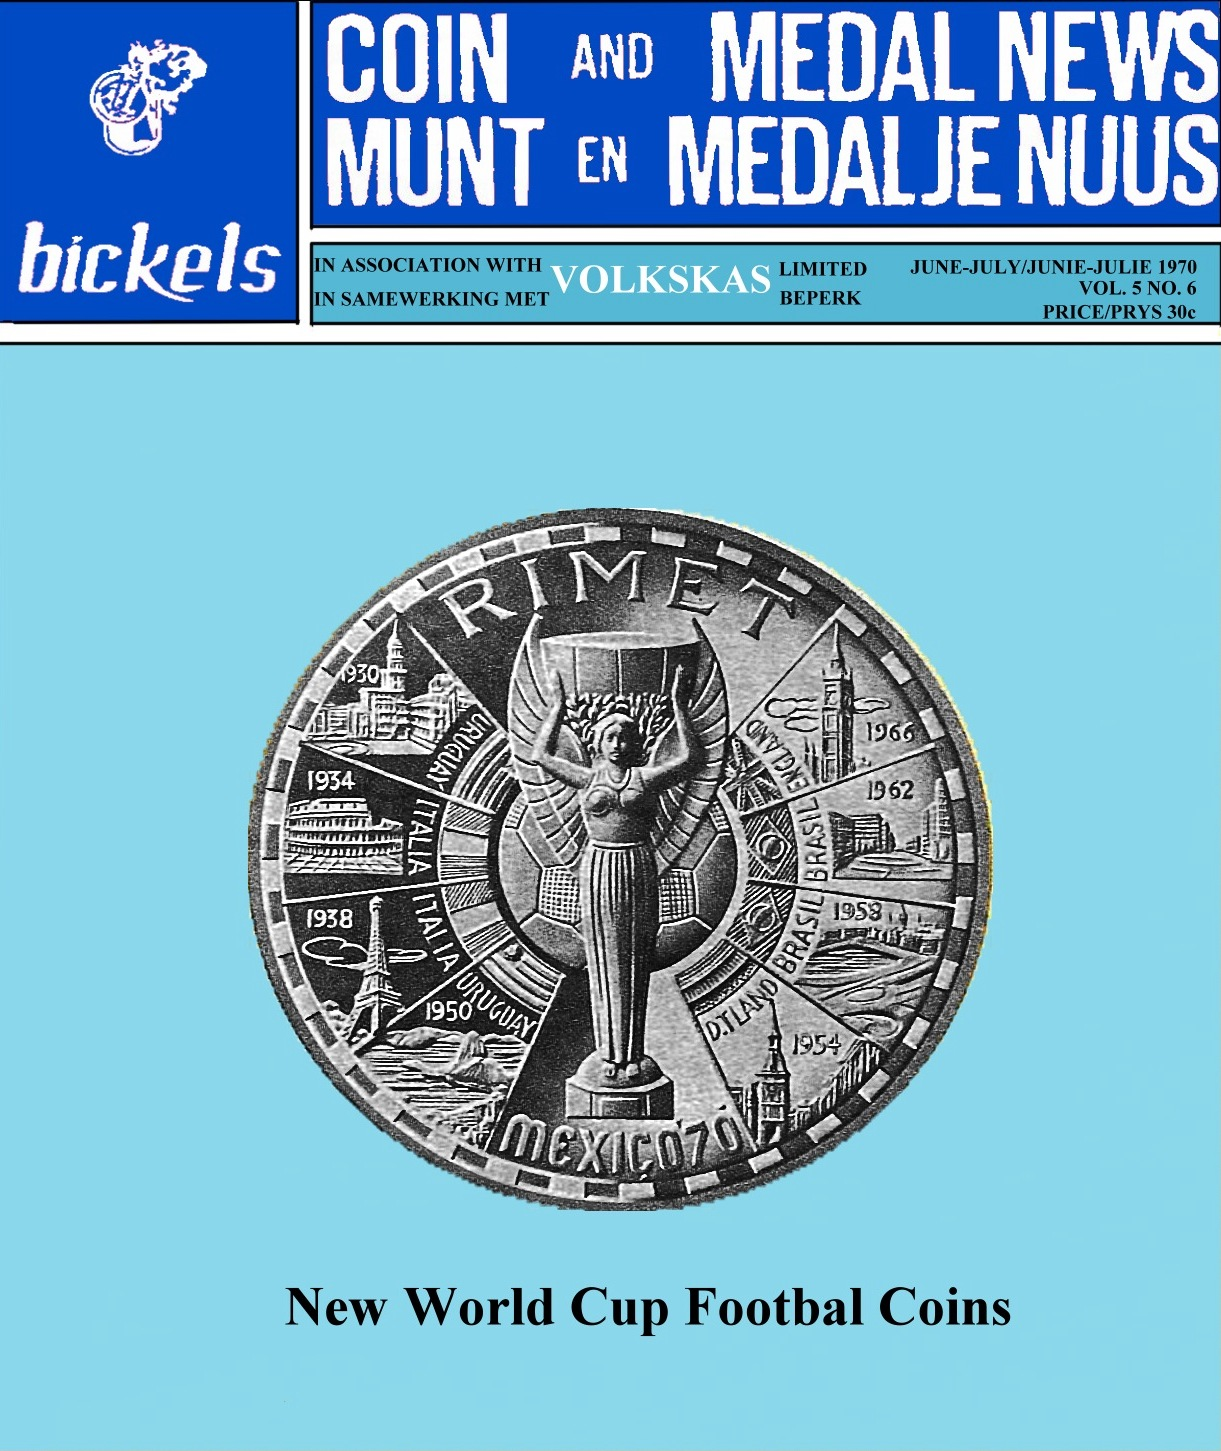 Bickels Coin & Medal June July 1970 Vol 5 No 6